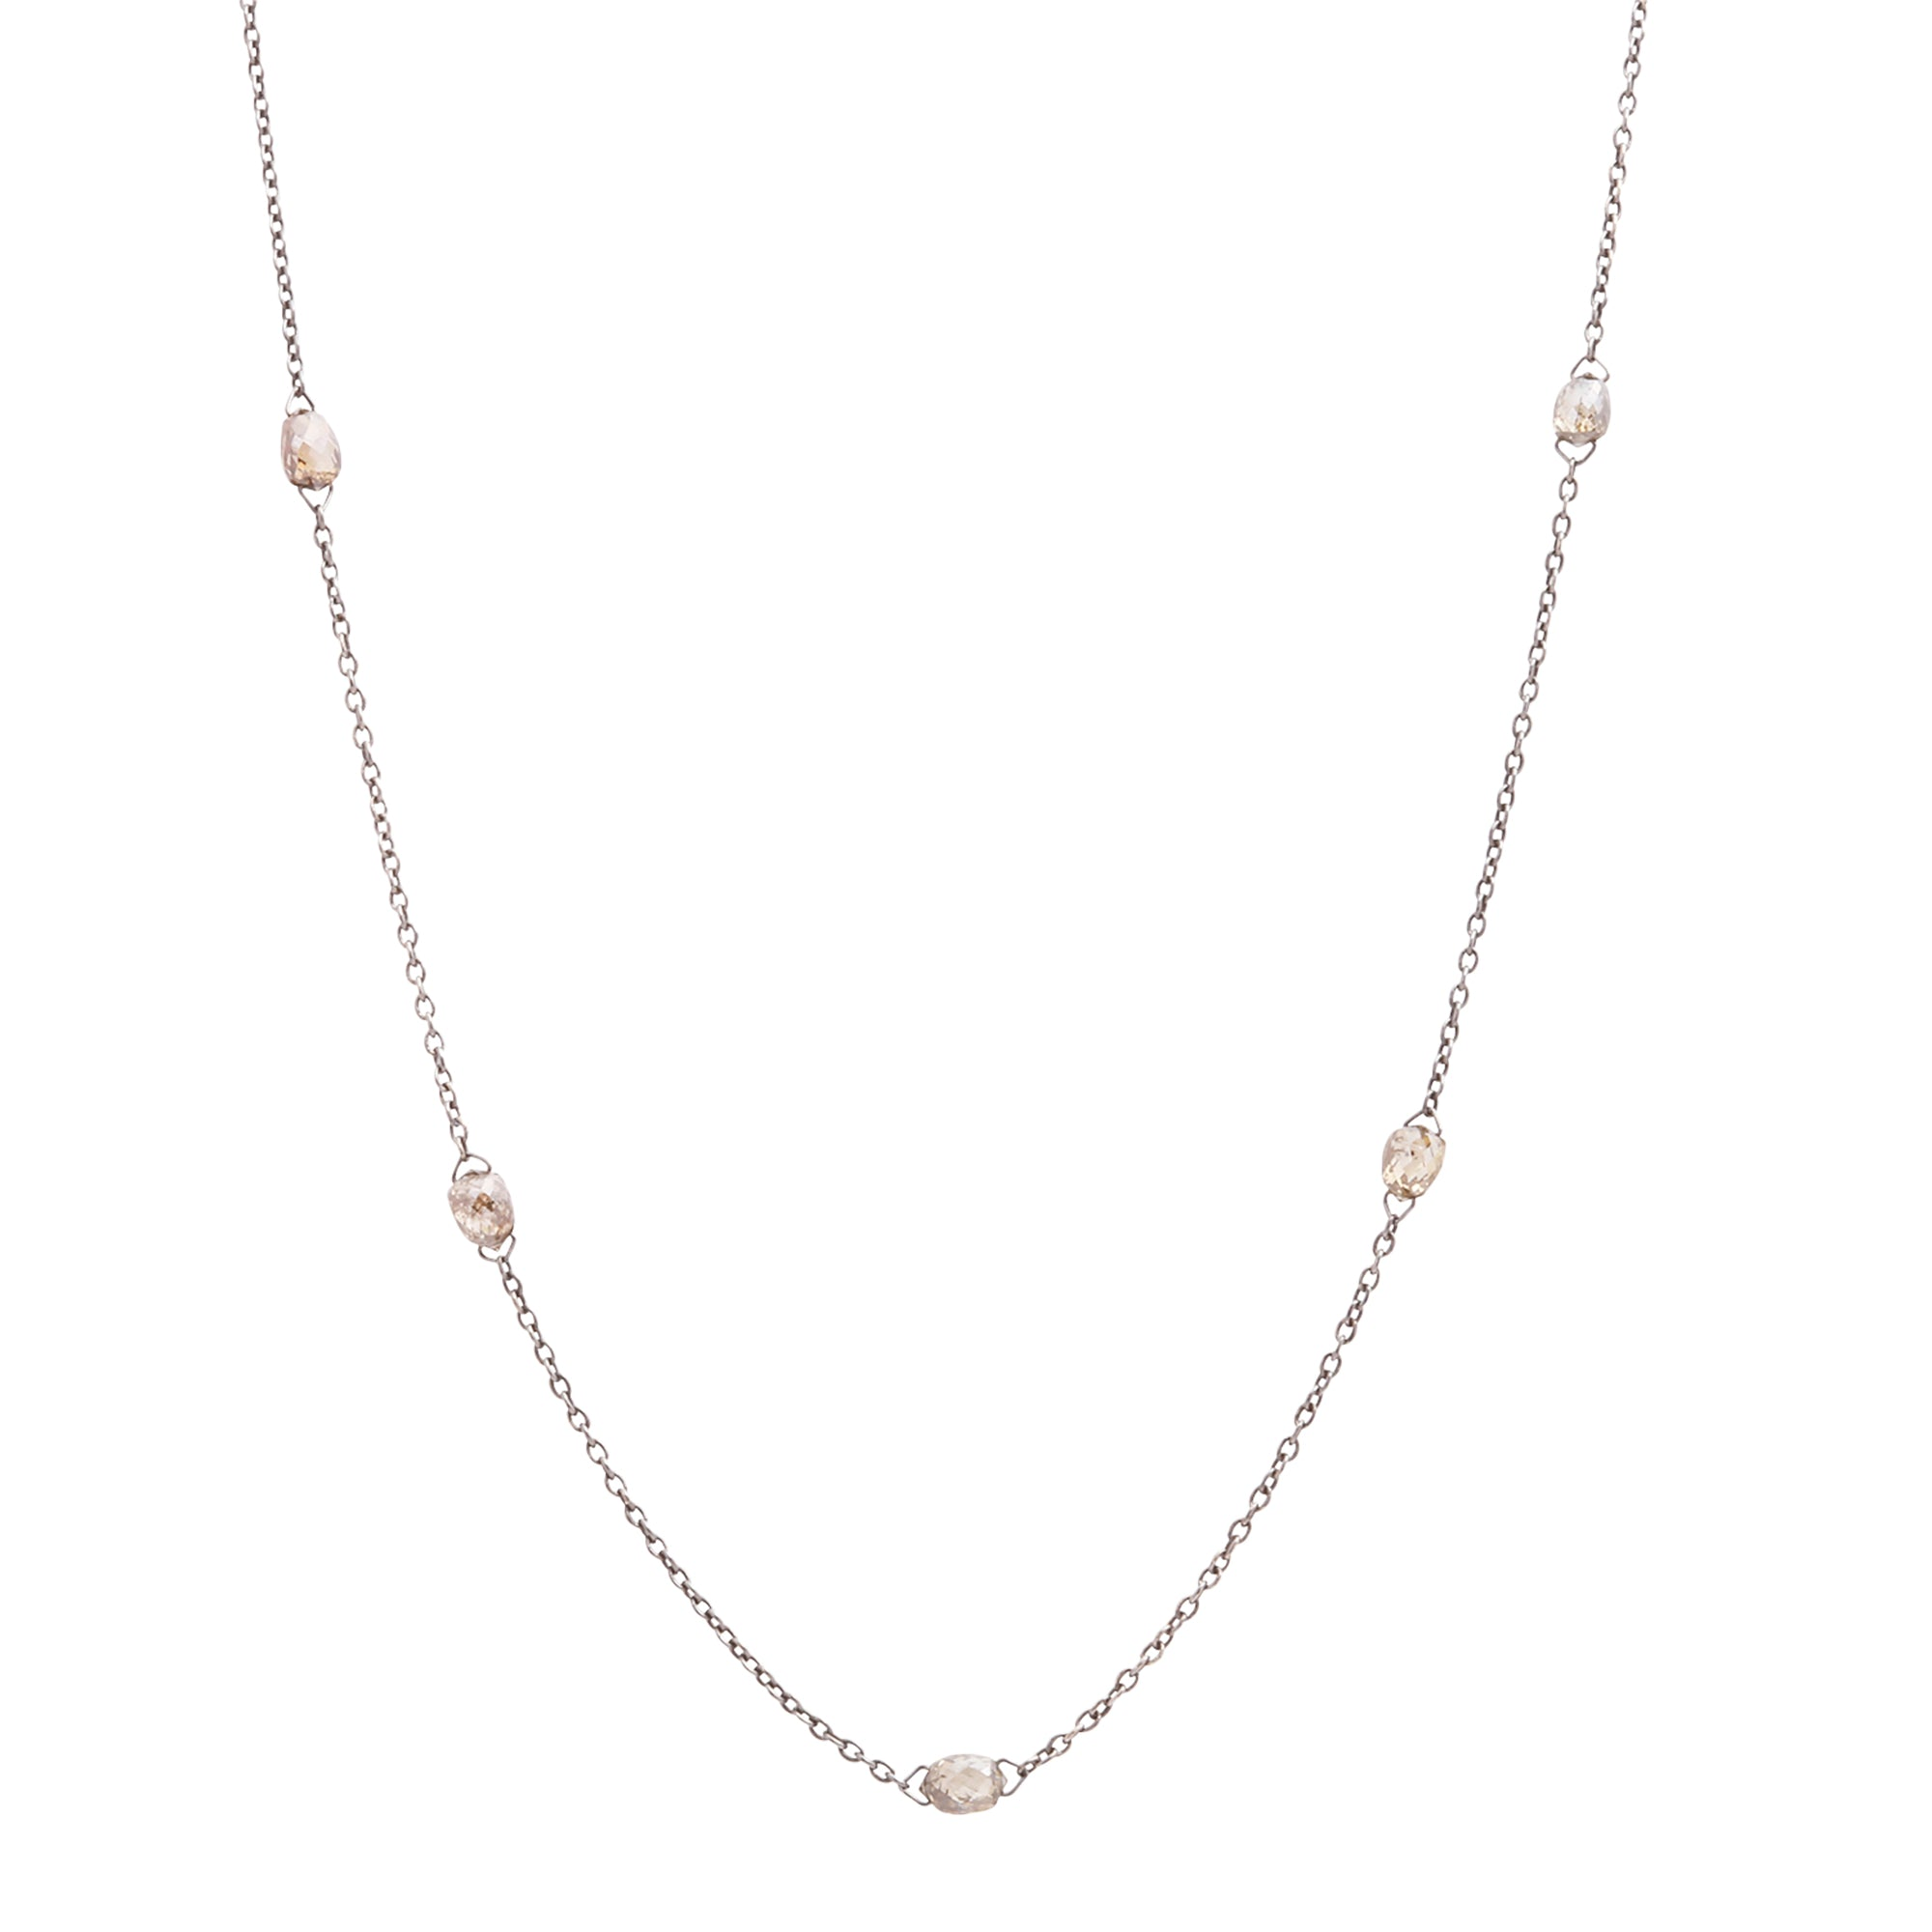 Brown Diamond Briolette Necklace